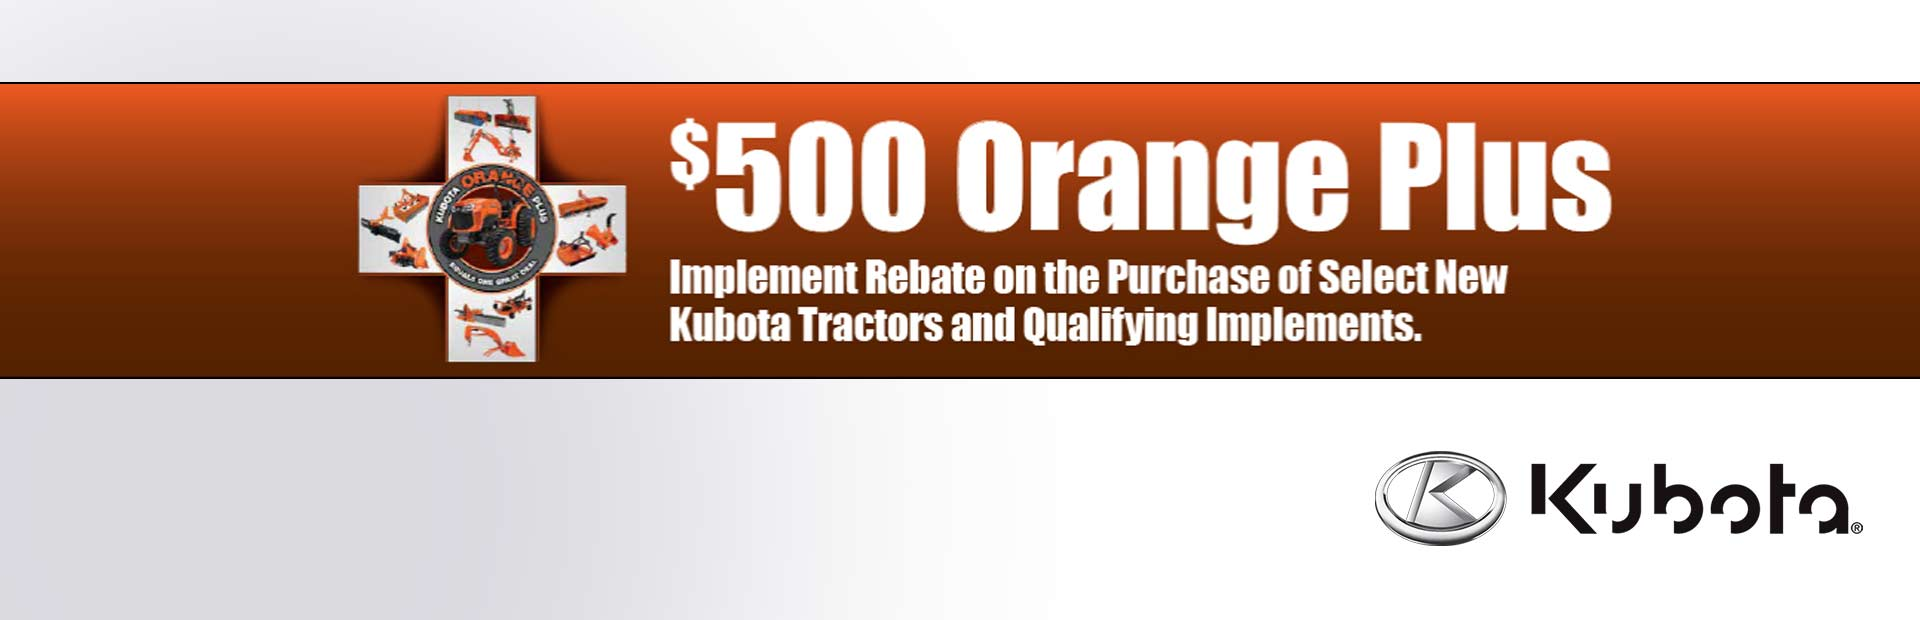 Kubota: $500 Orange Plus Rebate